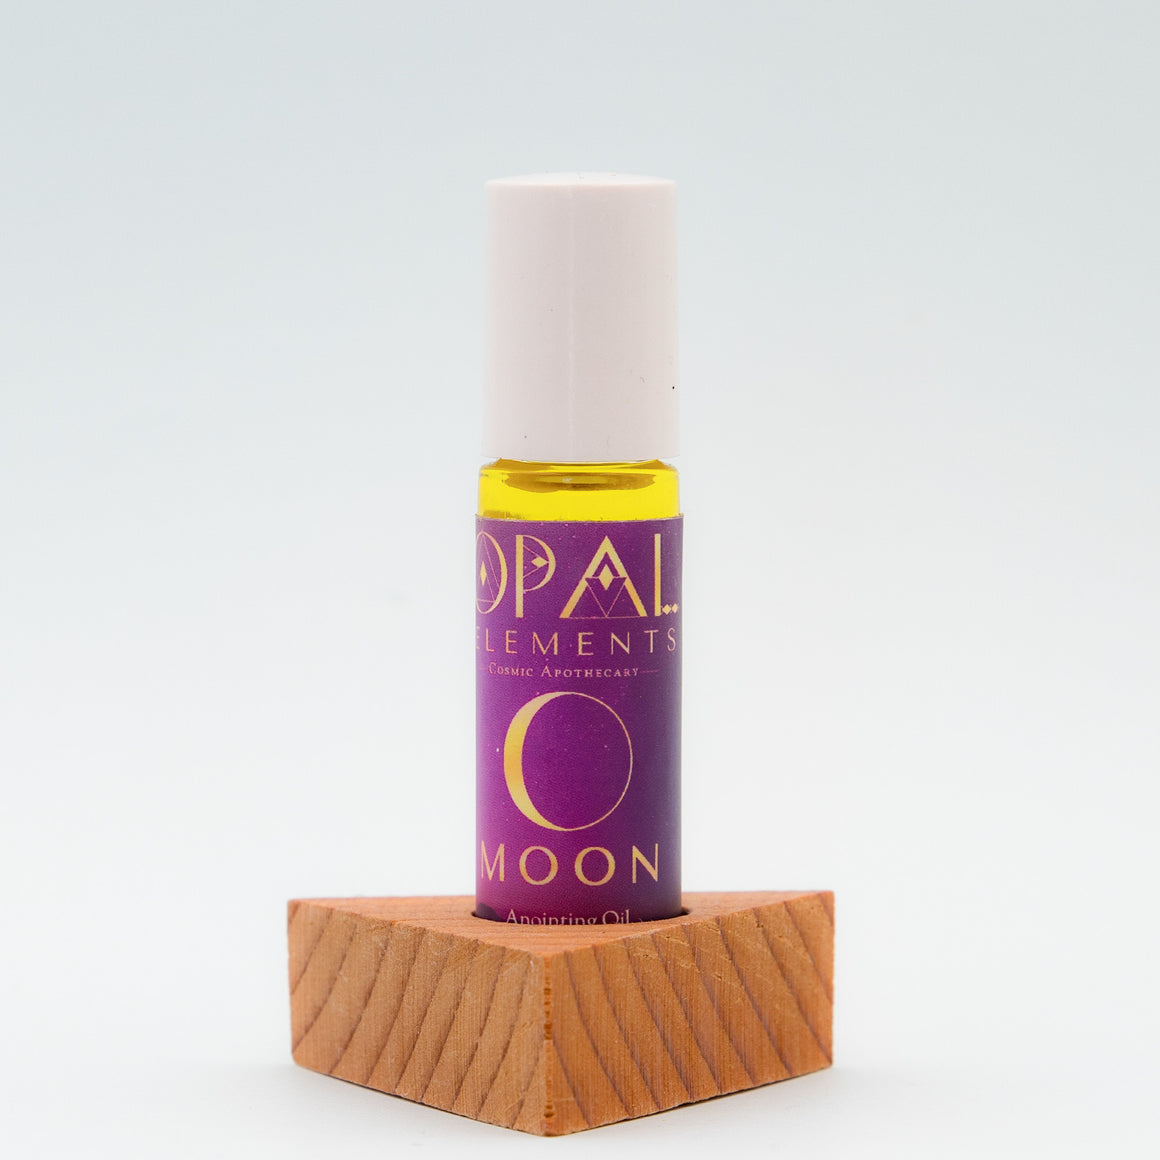 Opal Elements Planetary Anointing Oils - Moon